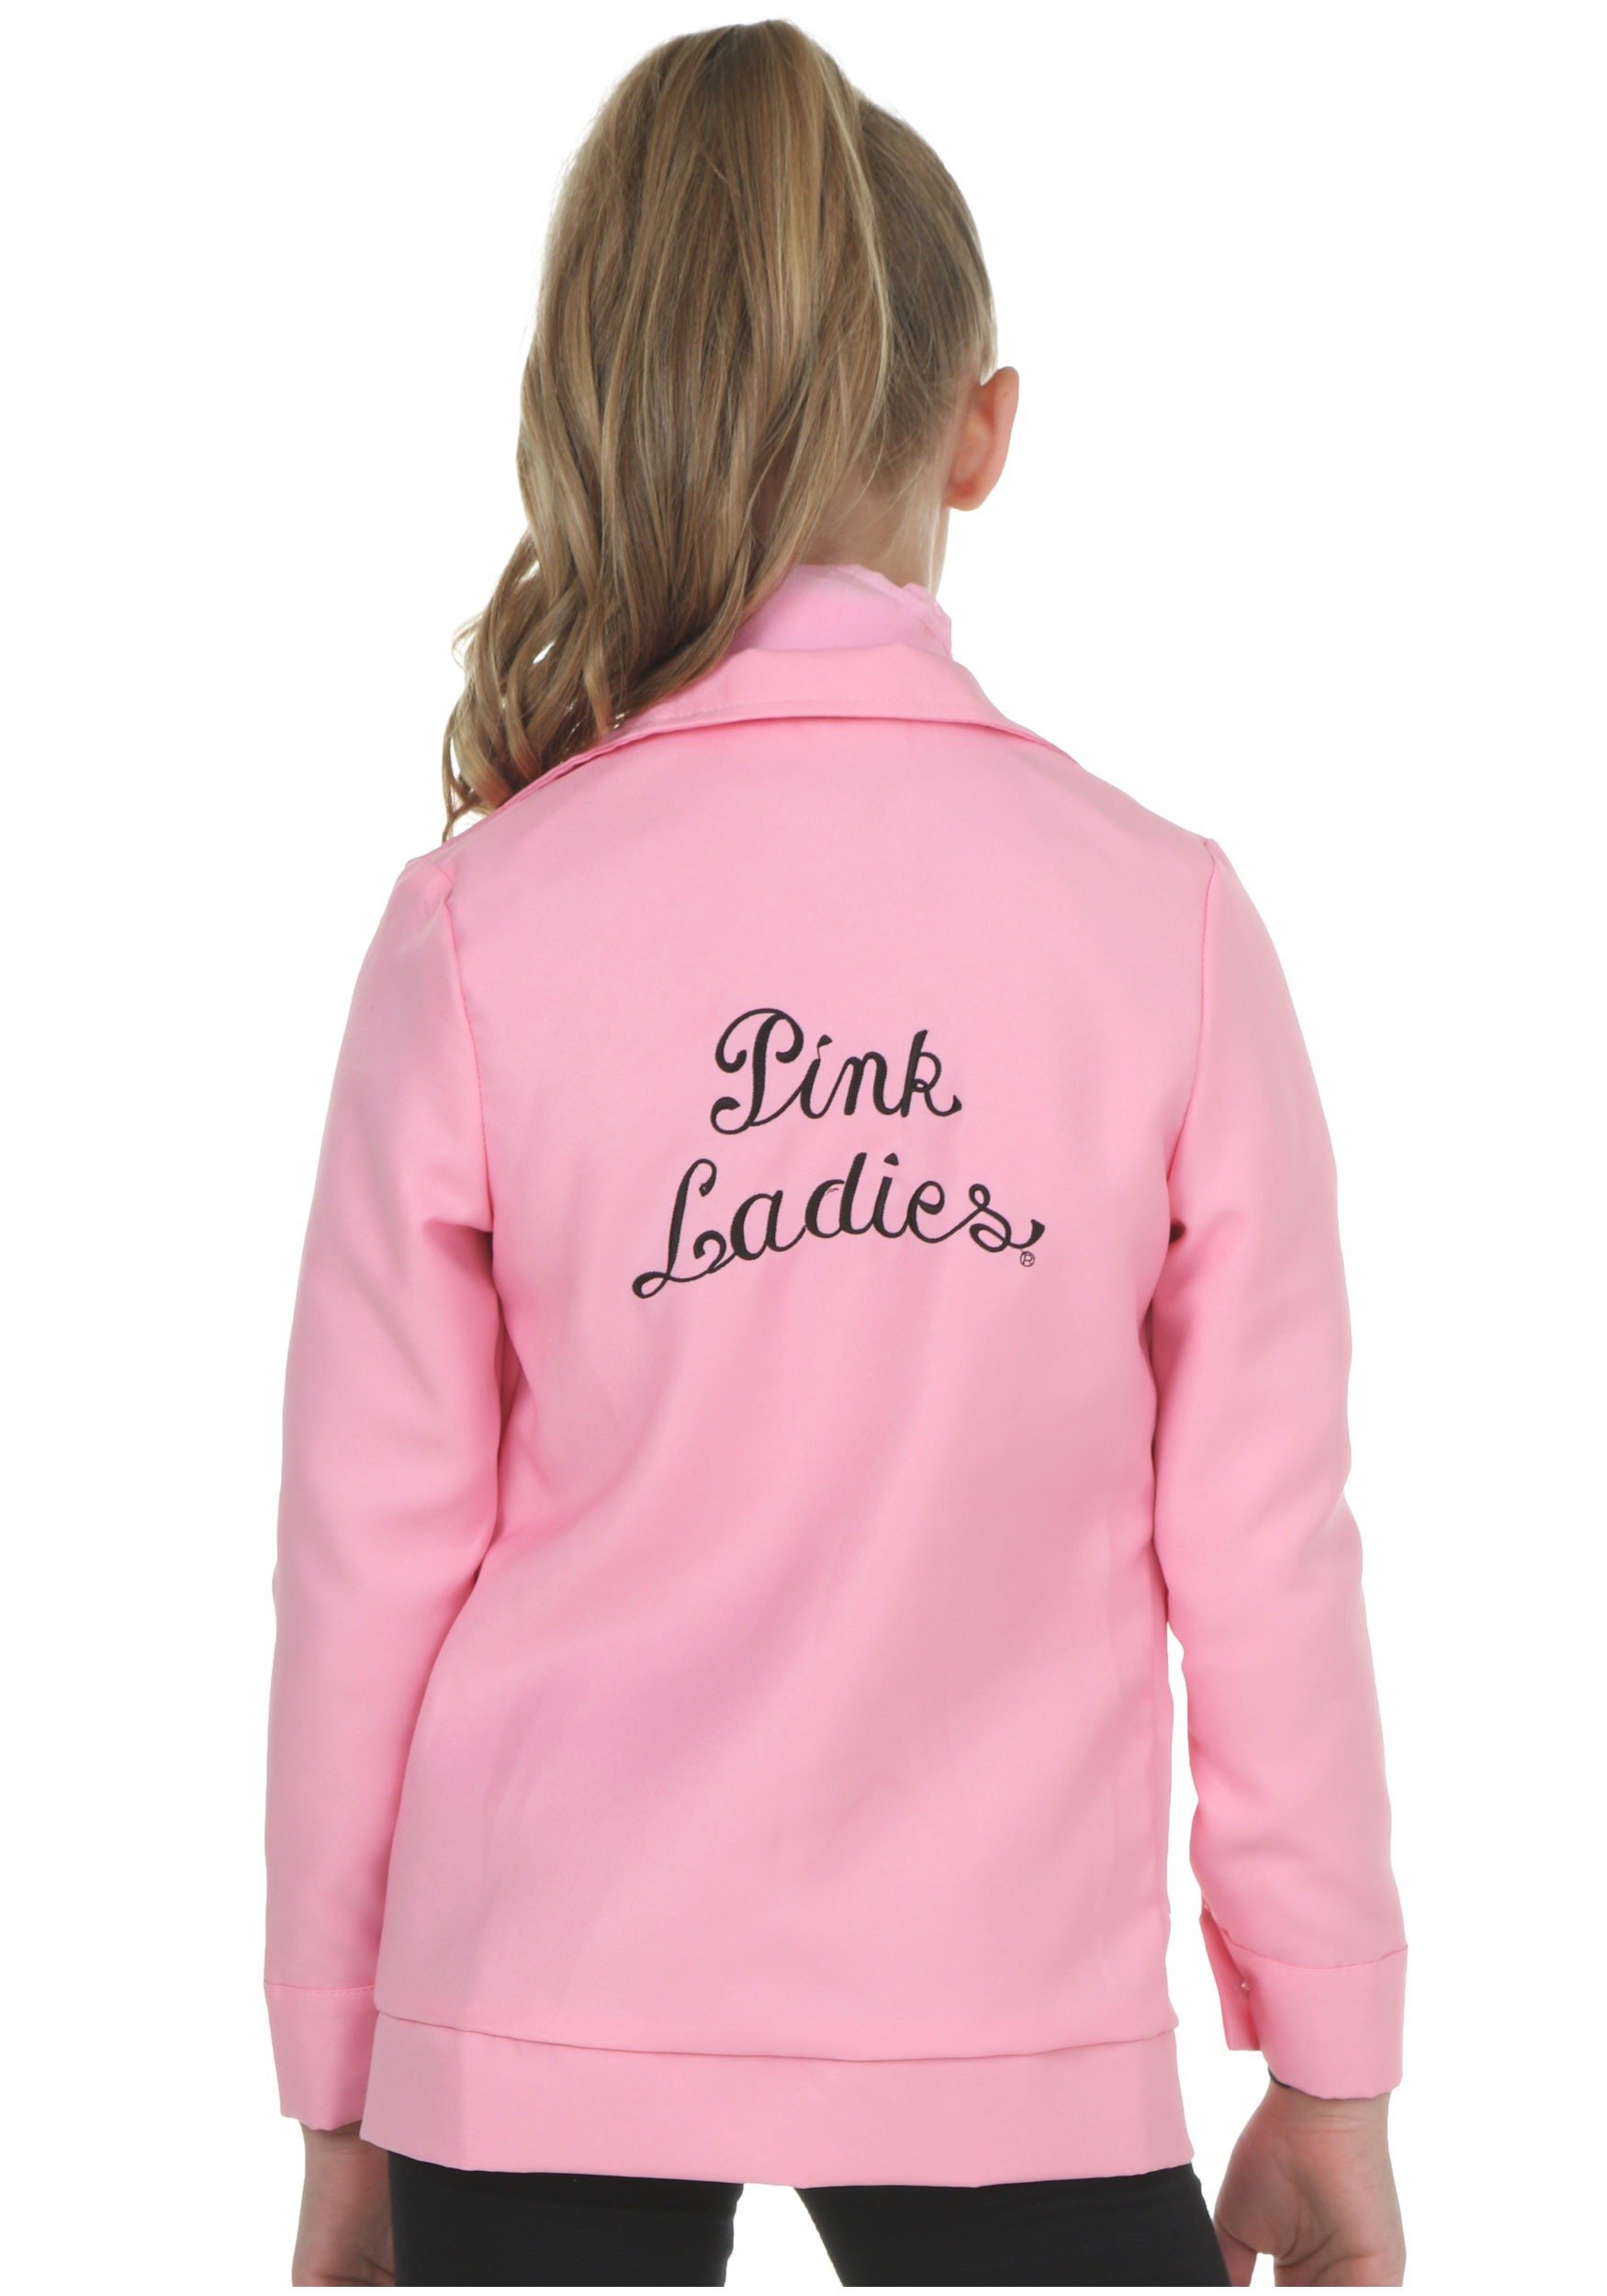 Pink Ladys Jacket GCCY0s